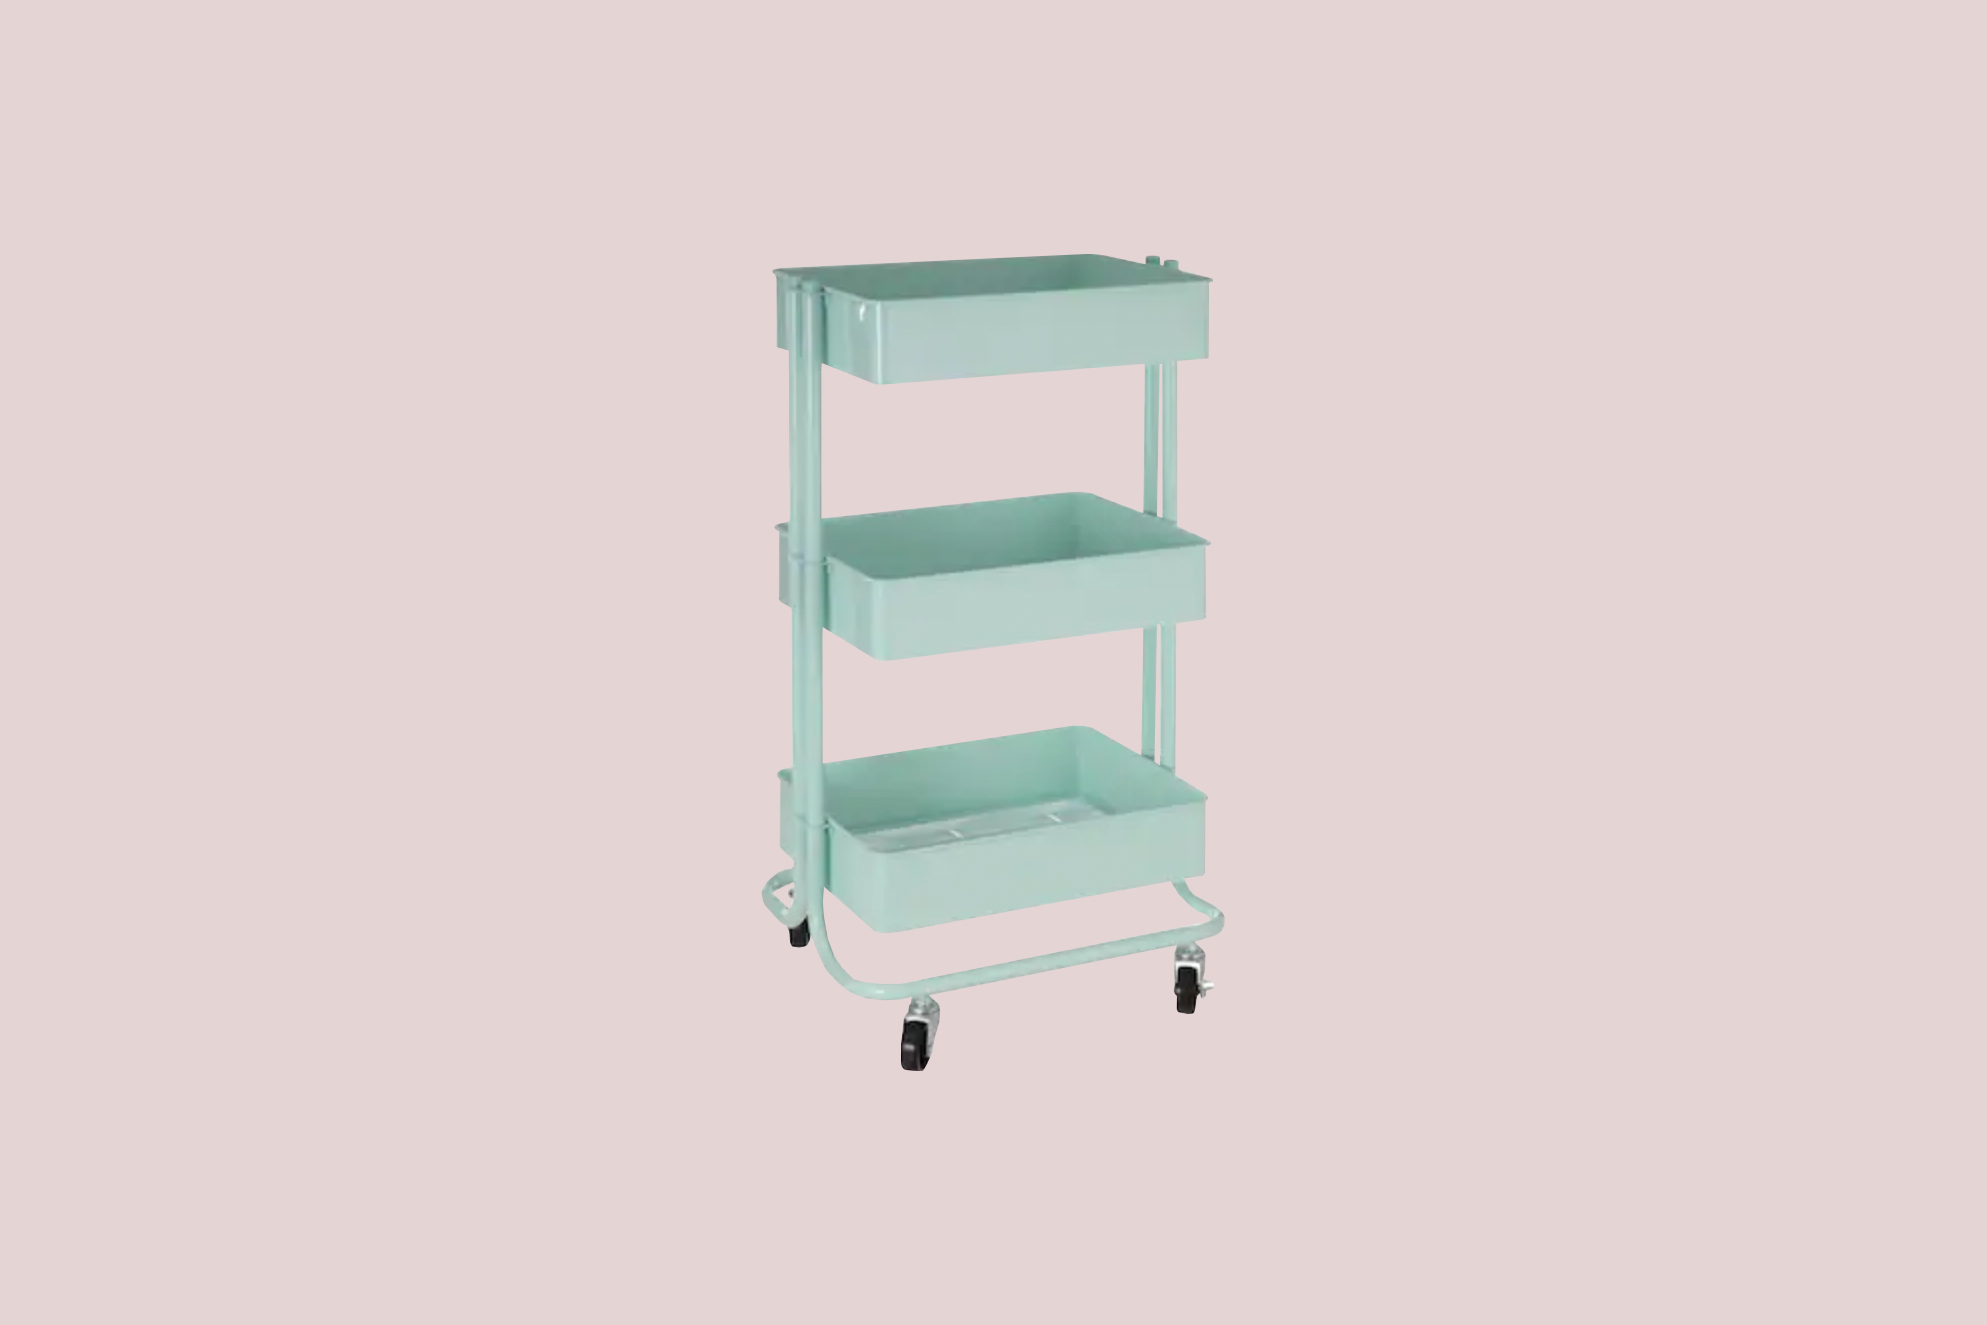 Michael's Lexington 3-Tier Rolling Cart by Recollections